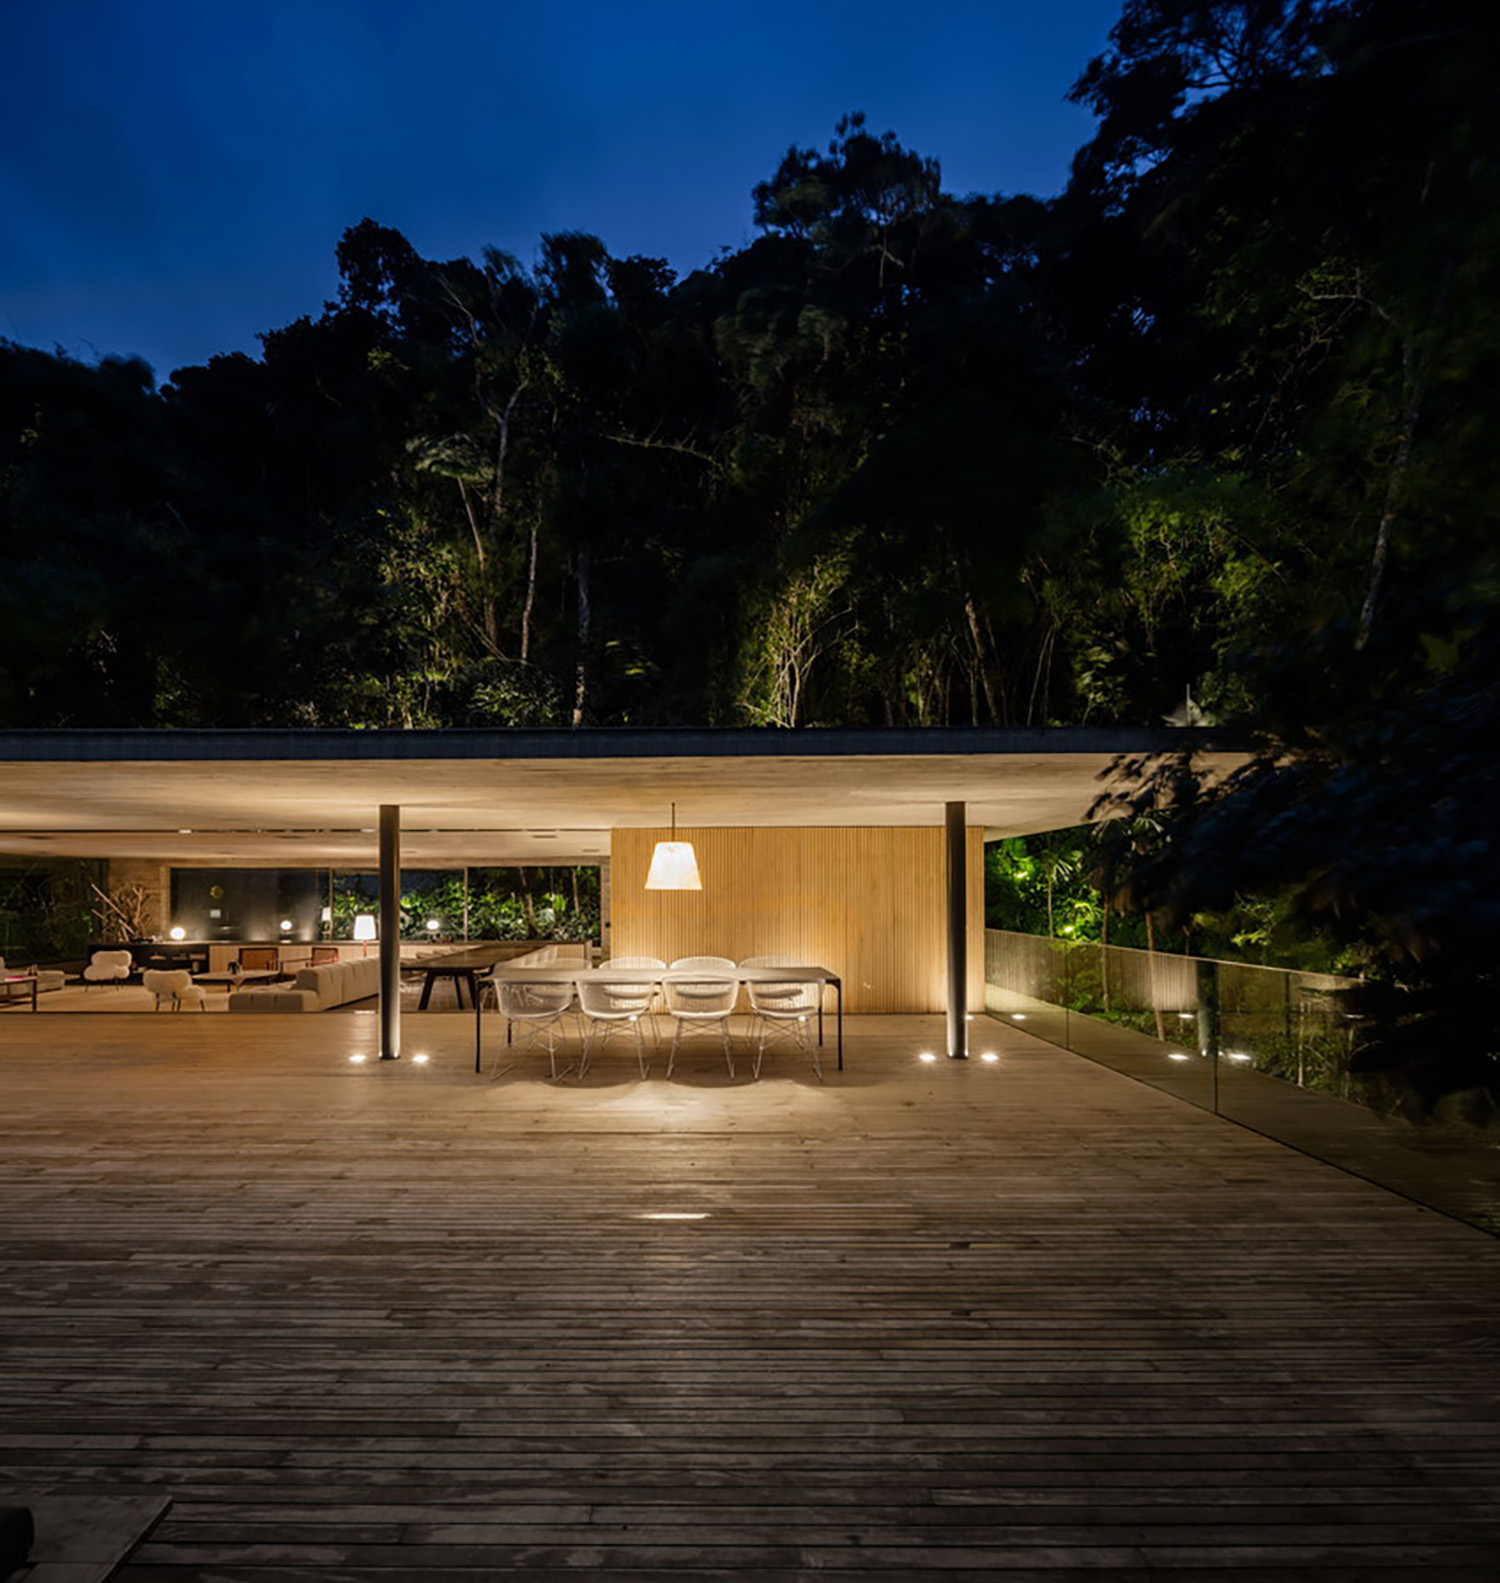 mm_Jungle House  design by Studiomk27 - Marcio Kogan + Samanta Cafardo_10